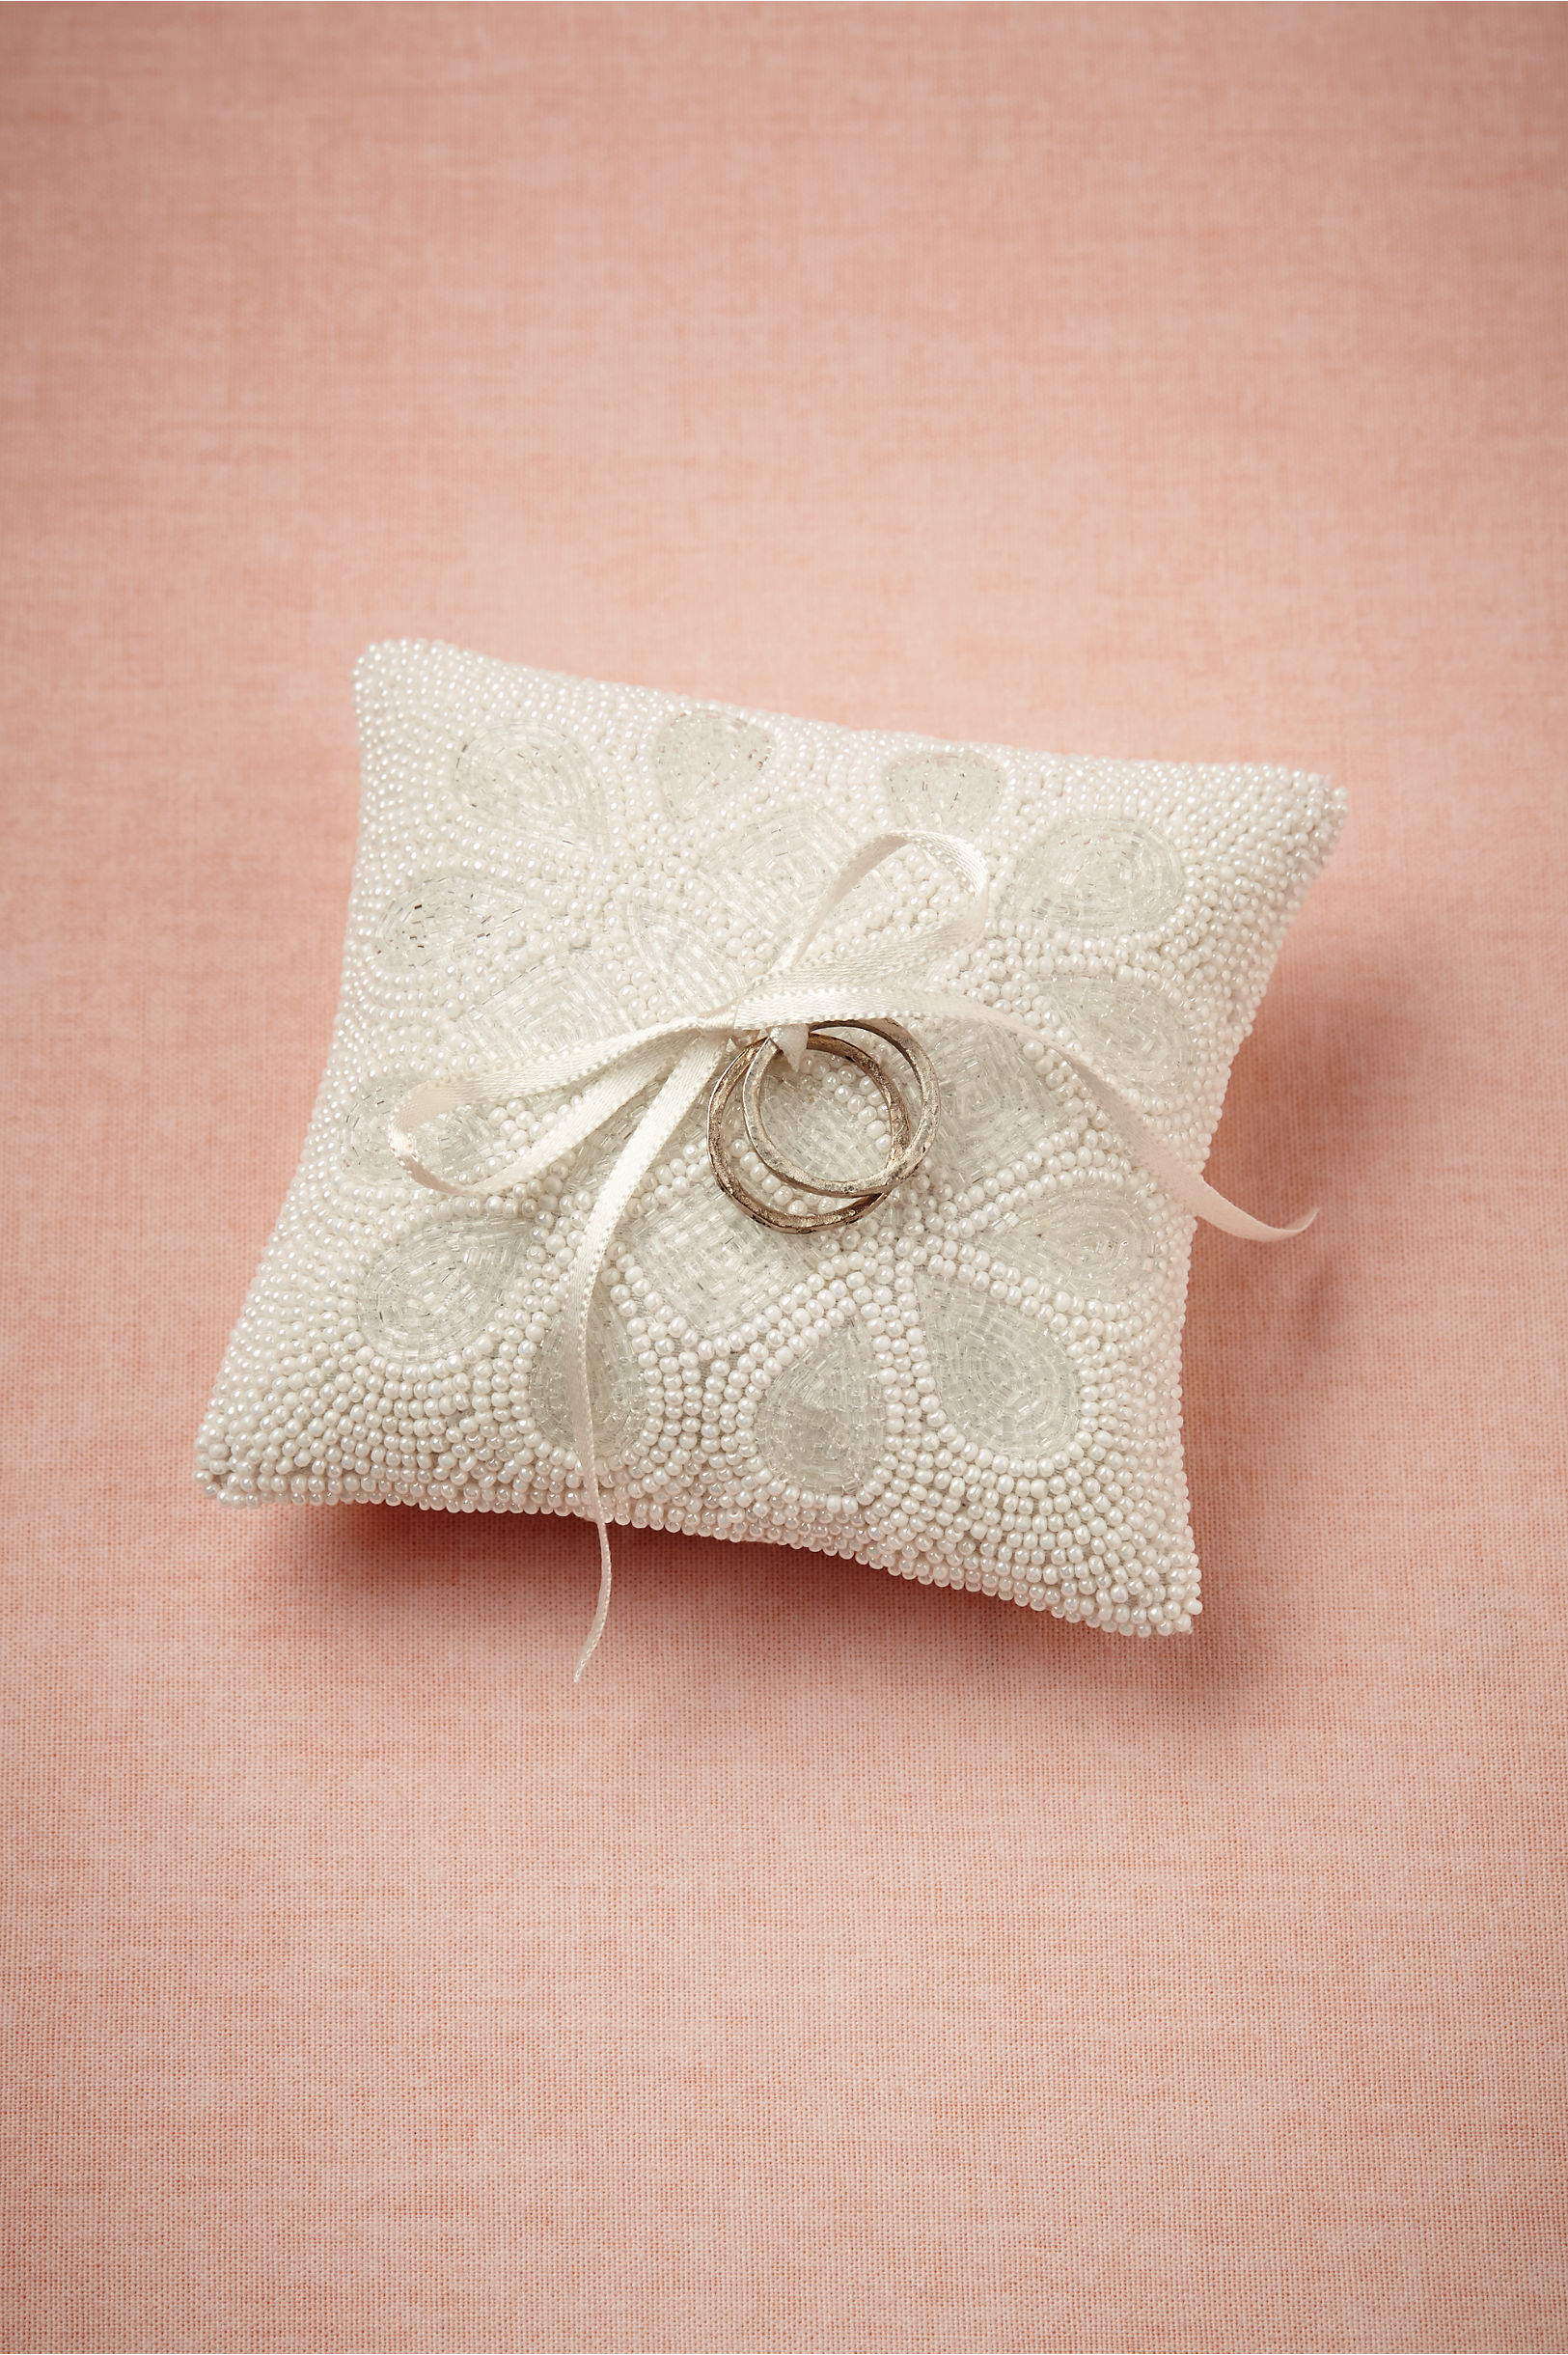 buds shopping flower wedding faux at bearer quotations pearls get cheap with find line on tinksky ribbons pillow decor ring designs deals guides